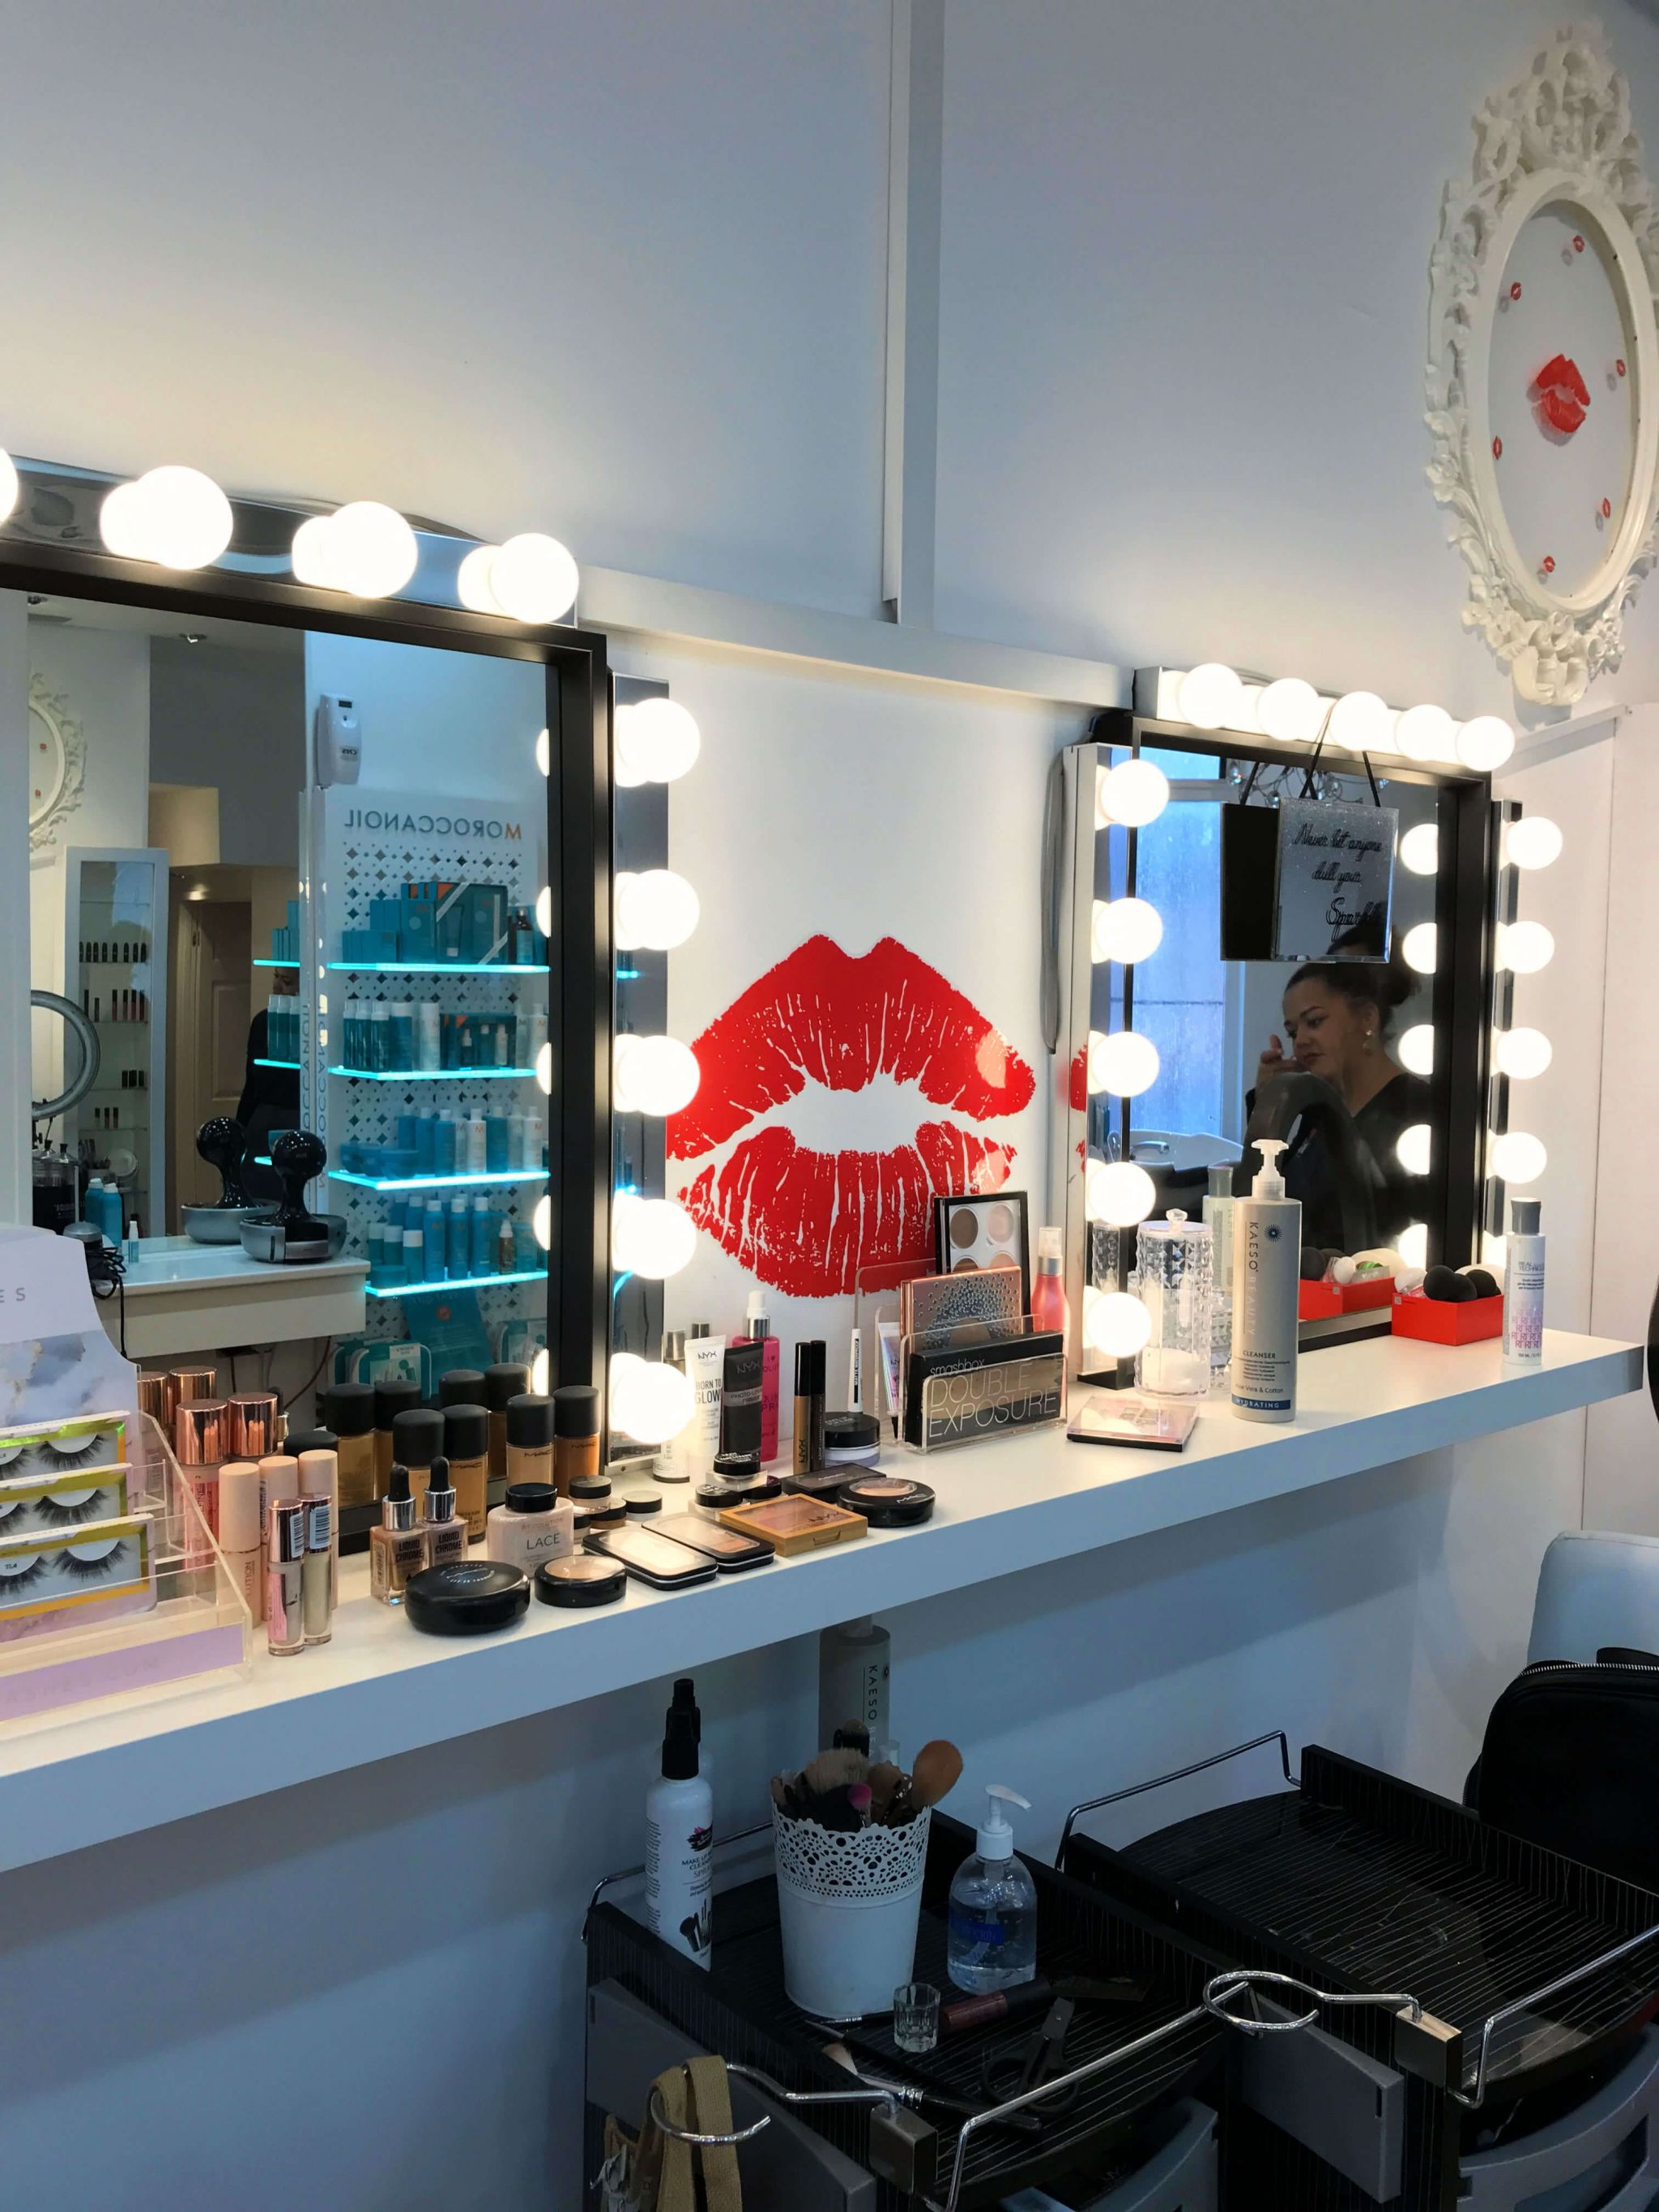 Mwah Cardiff makeup station